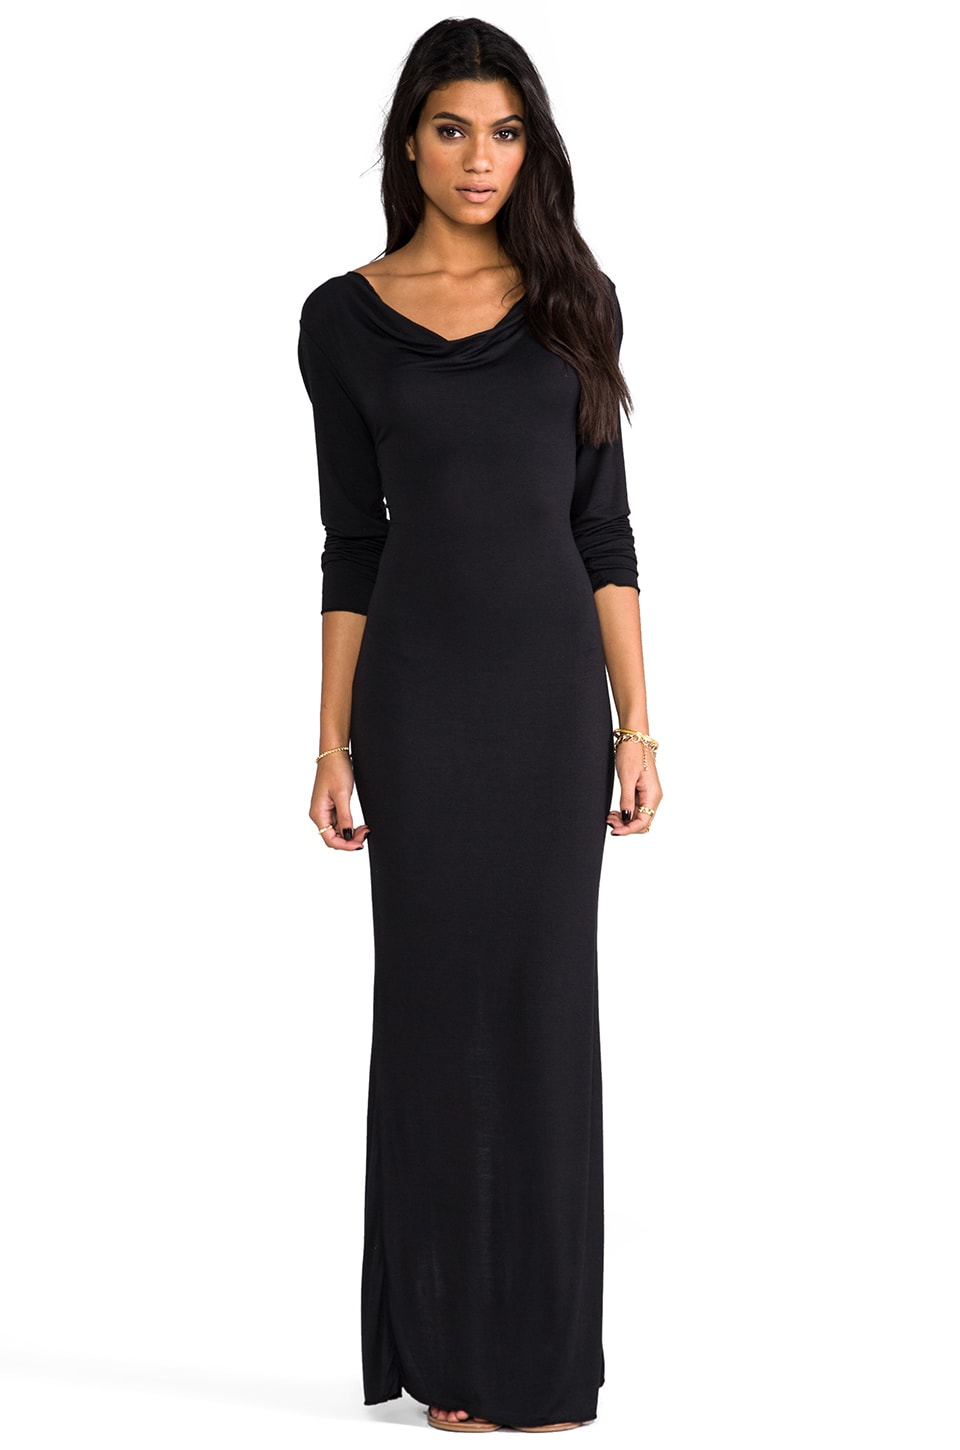 Indah Santee Long Sleeve Maxi Dress in Black